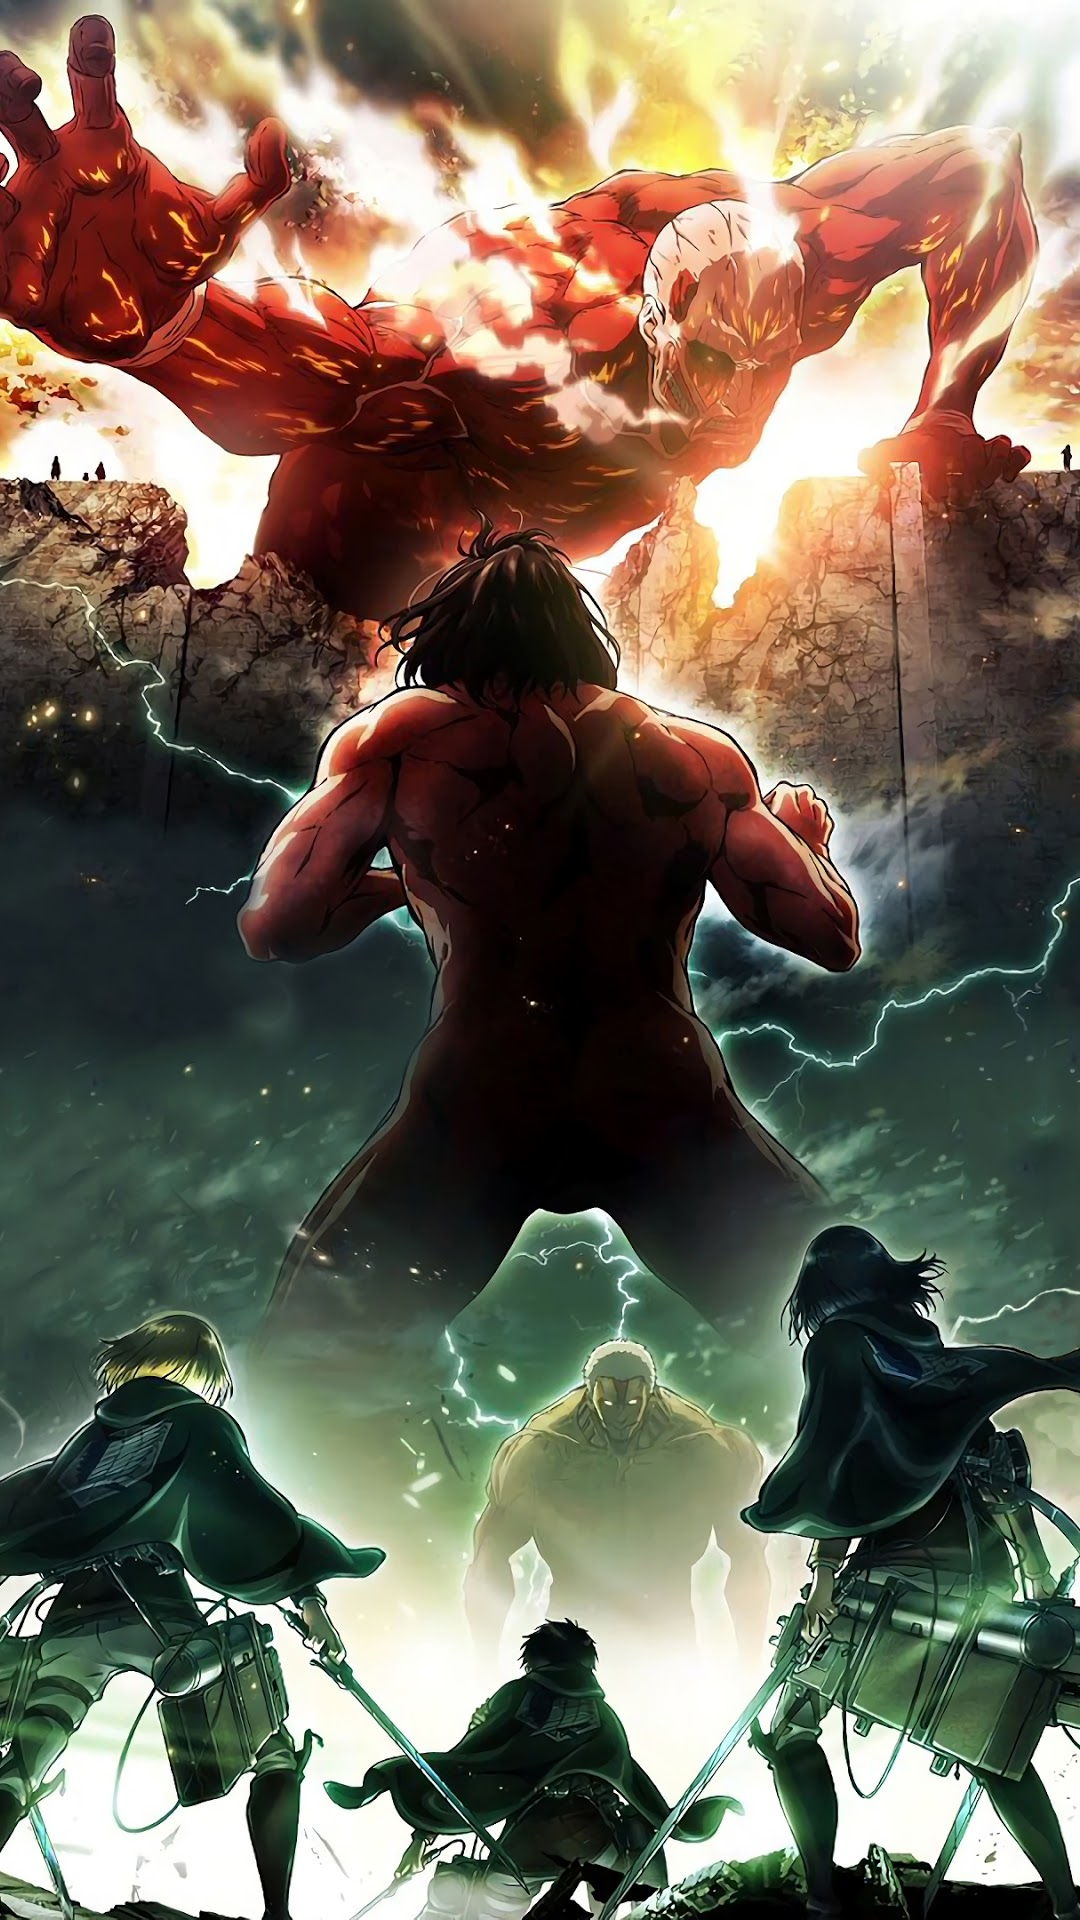 Iphone Attack On Titan Wallpaper Kolpaper Awesome Free Hd Wallpapers